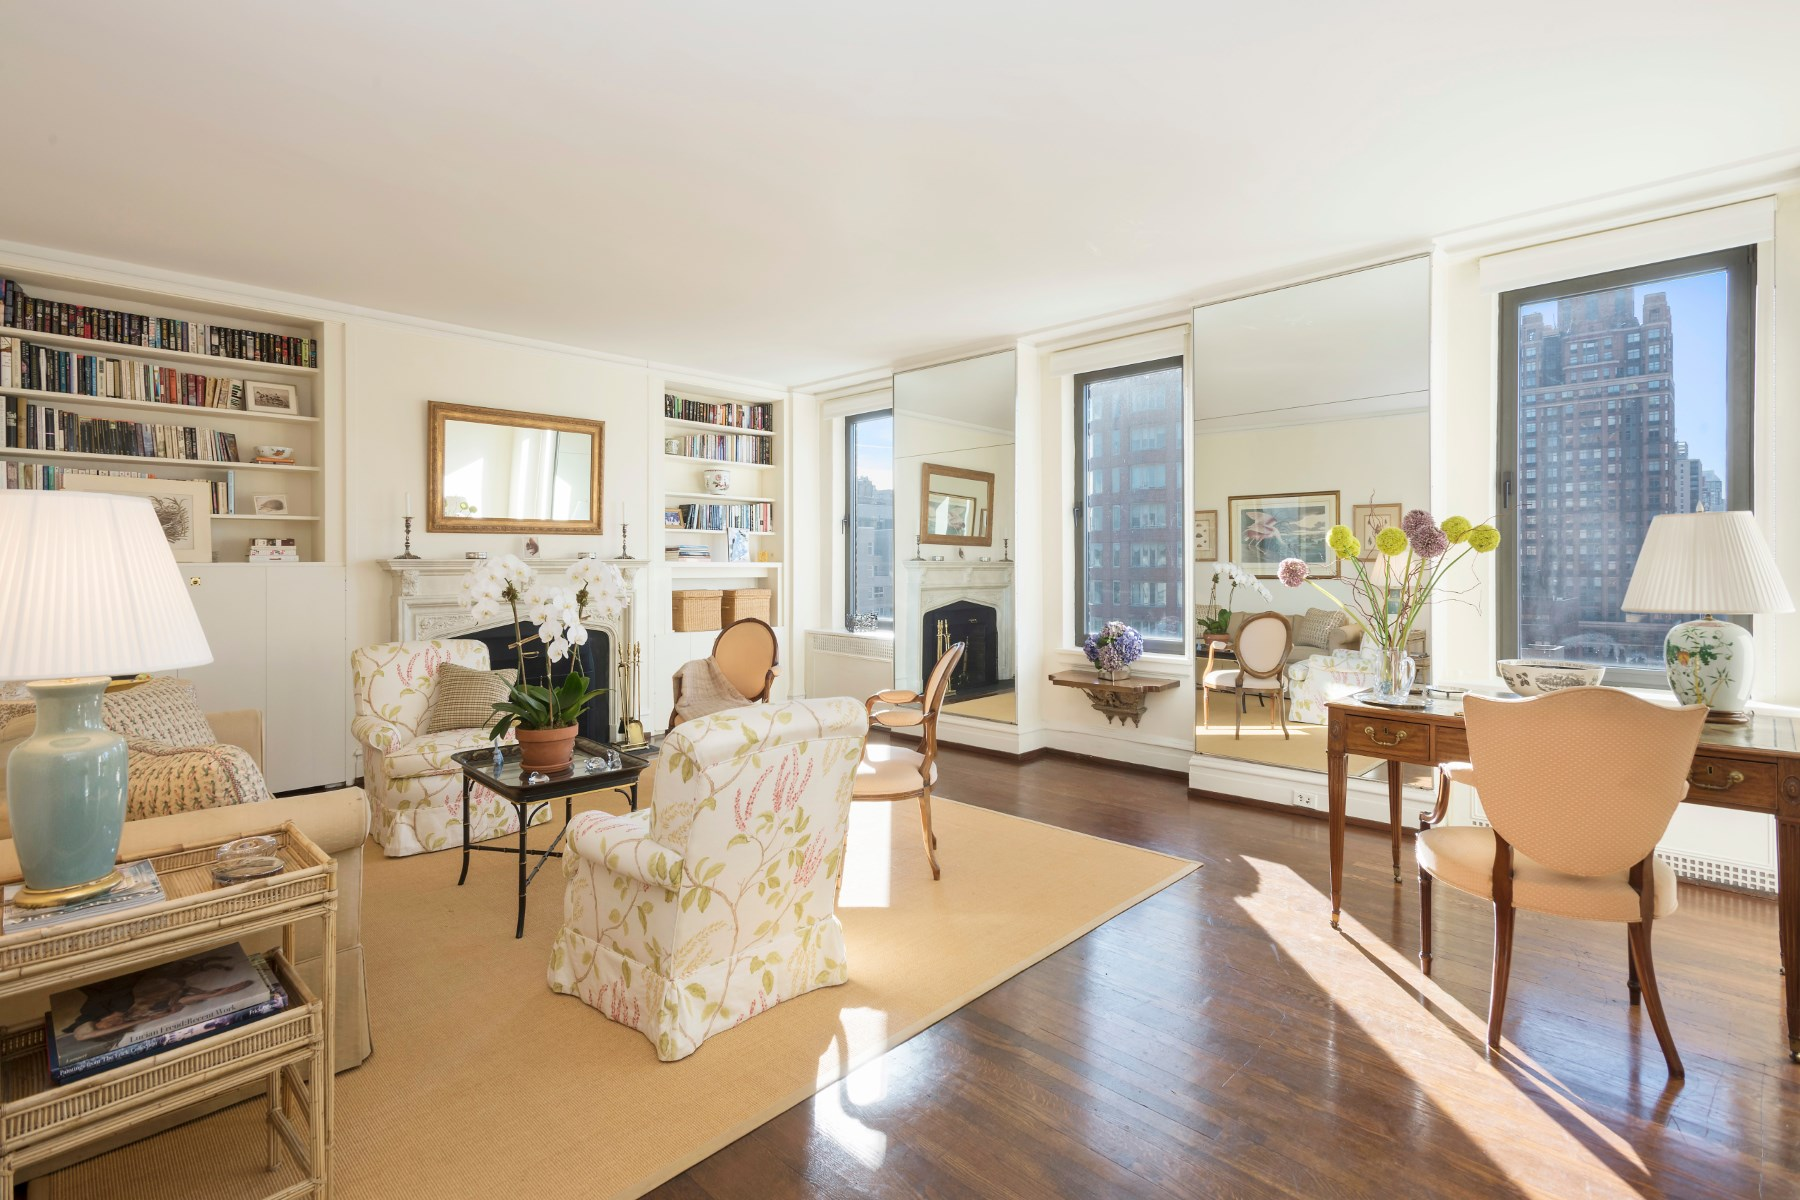 Co-op for Sale at Pre War Elegance 180 East 79th Street Apt 18F New York, New York, 10075 United States